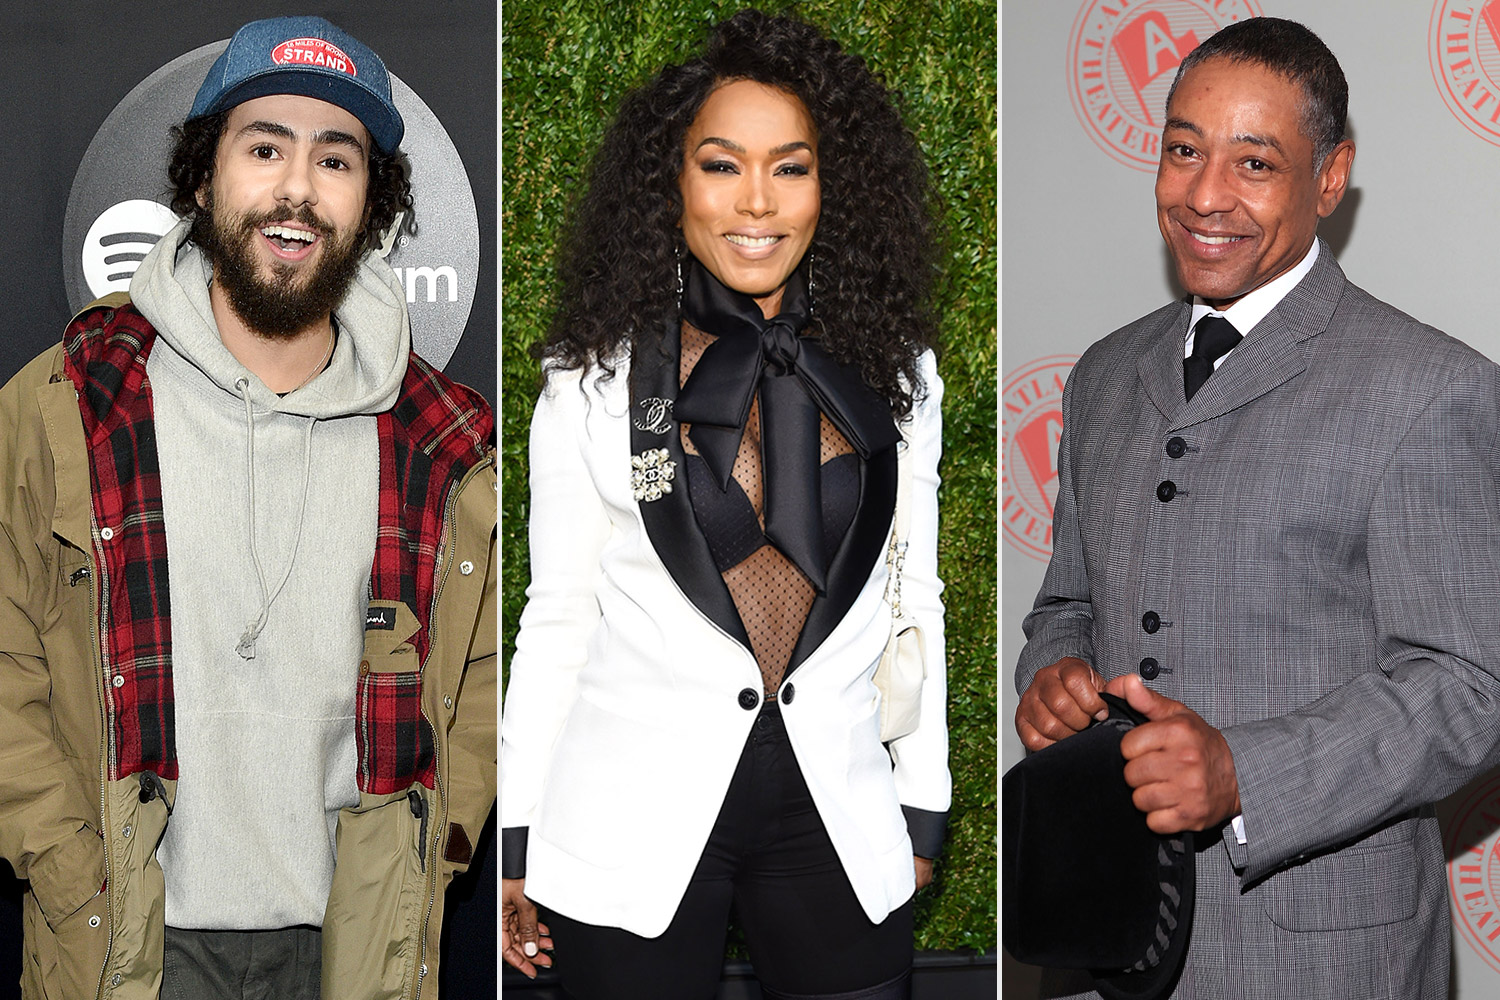 Ramy Youssef, Giancarlo Esposito, and Angela Bassett